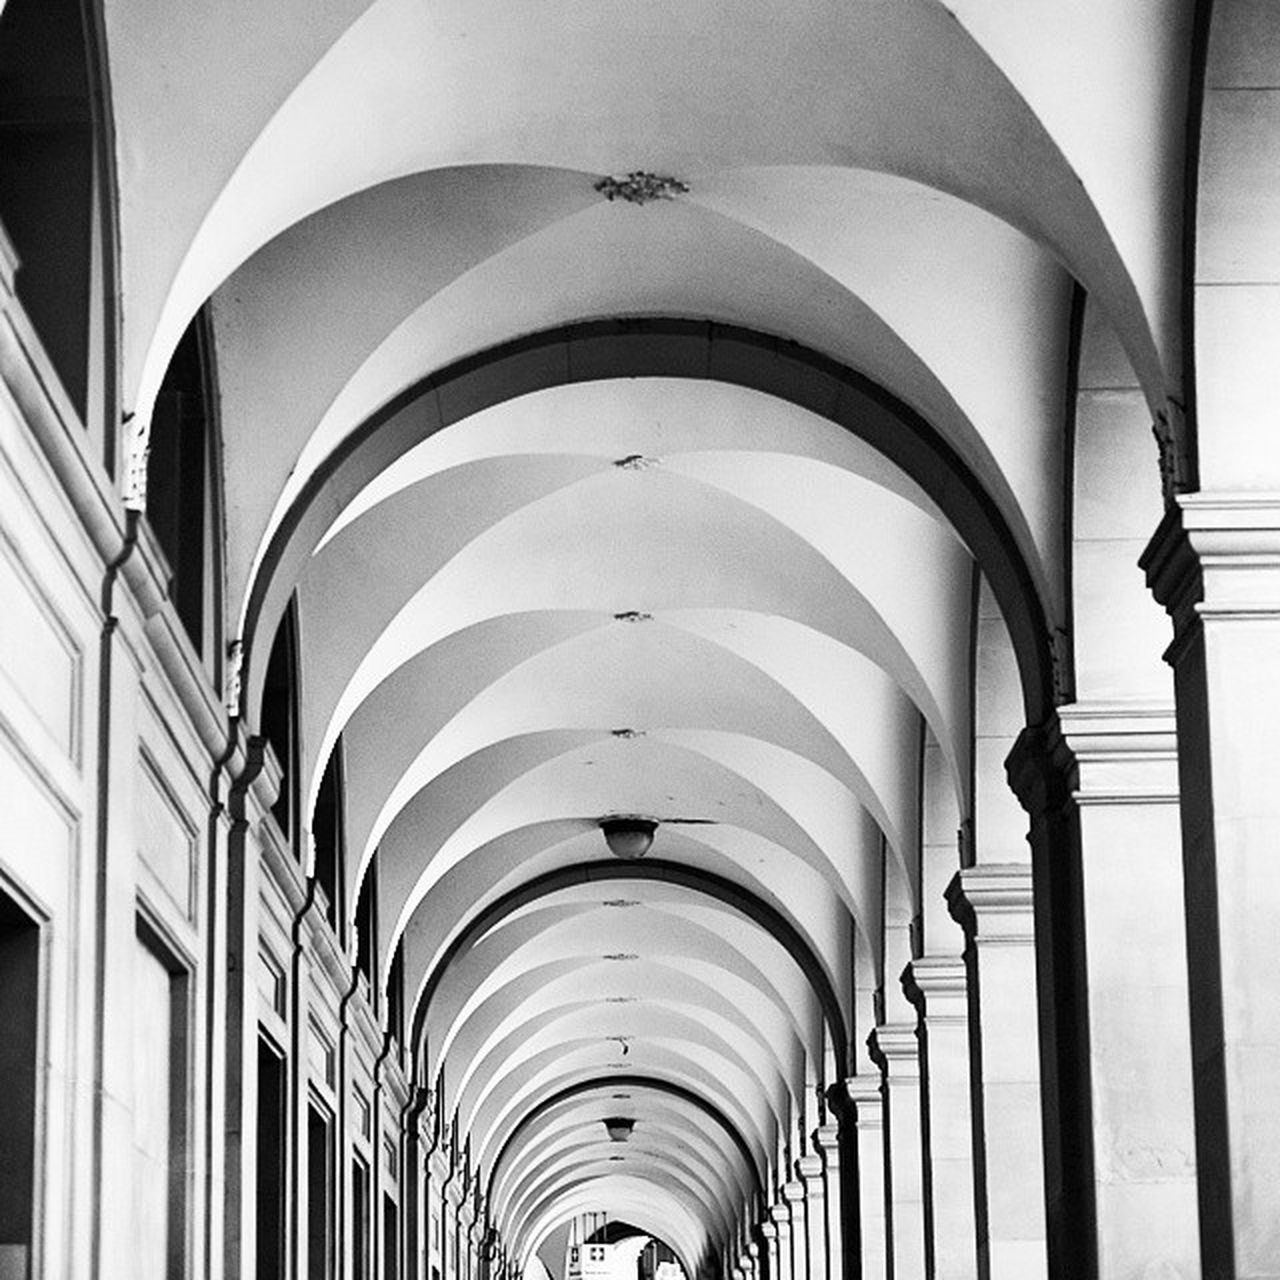 architecture, built structure, ceiling, arch, corridor, no people, indoors, architectural column, low angle view, pillar, day